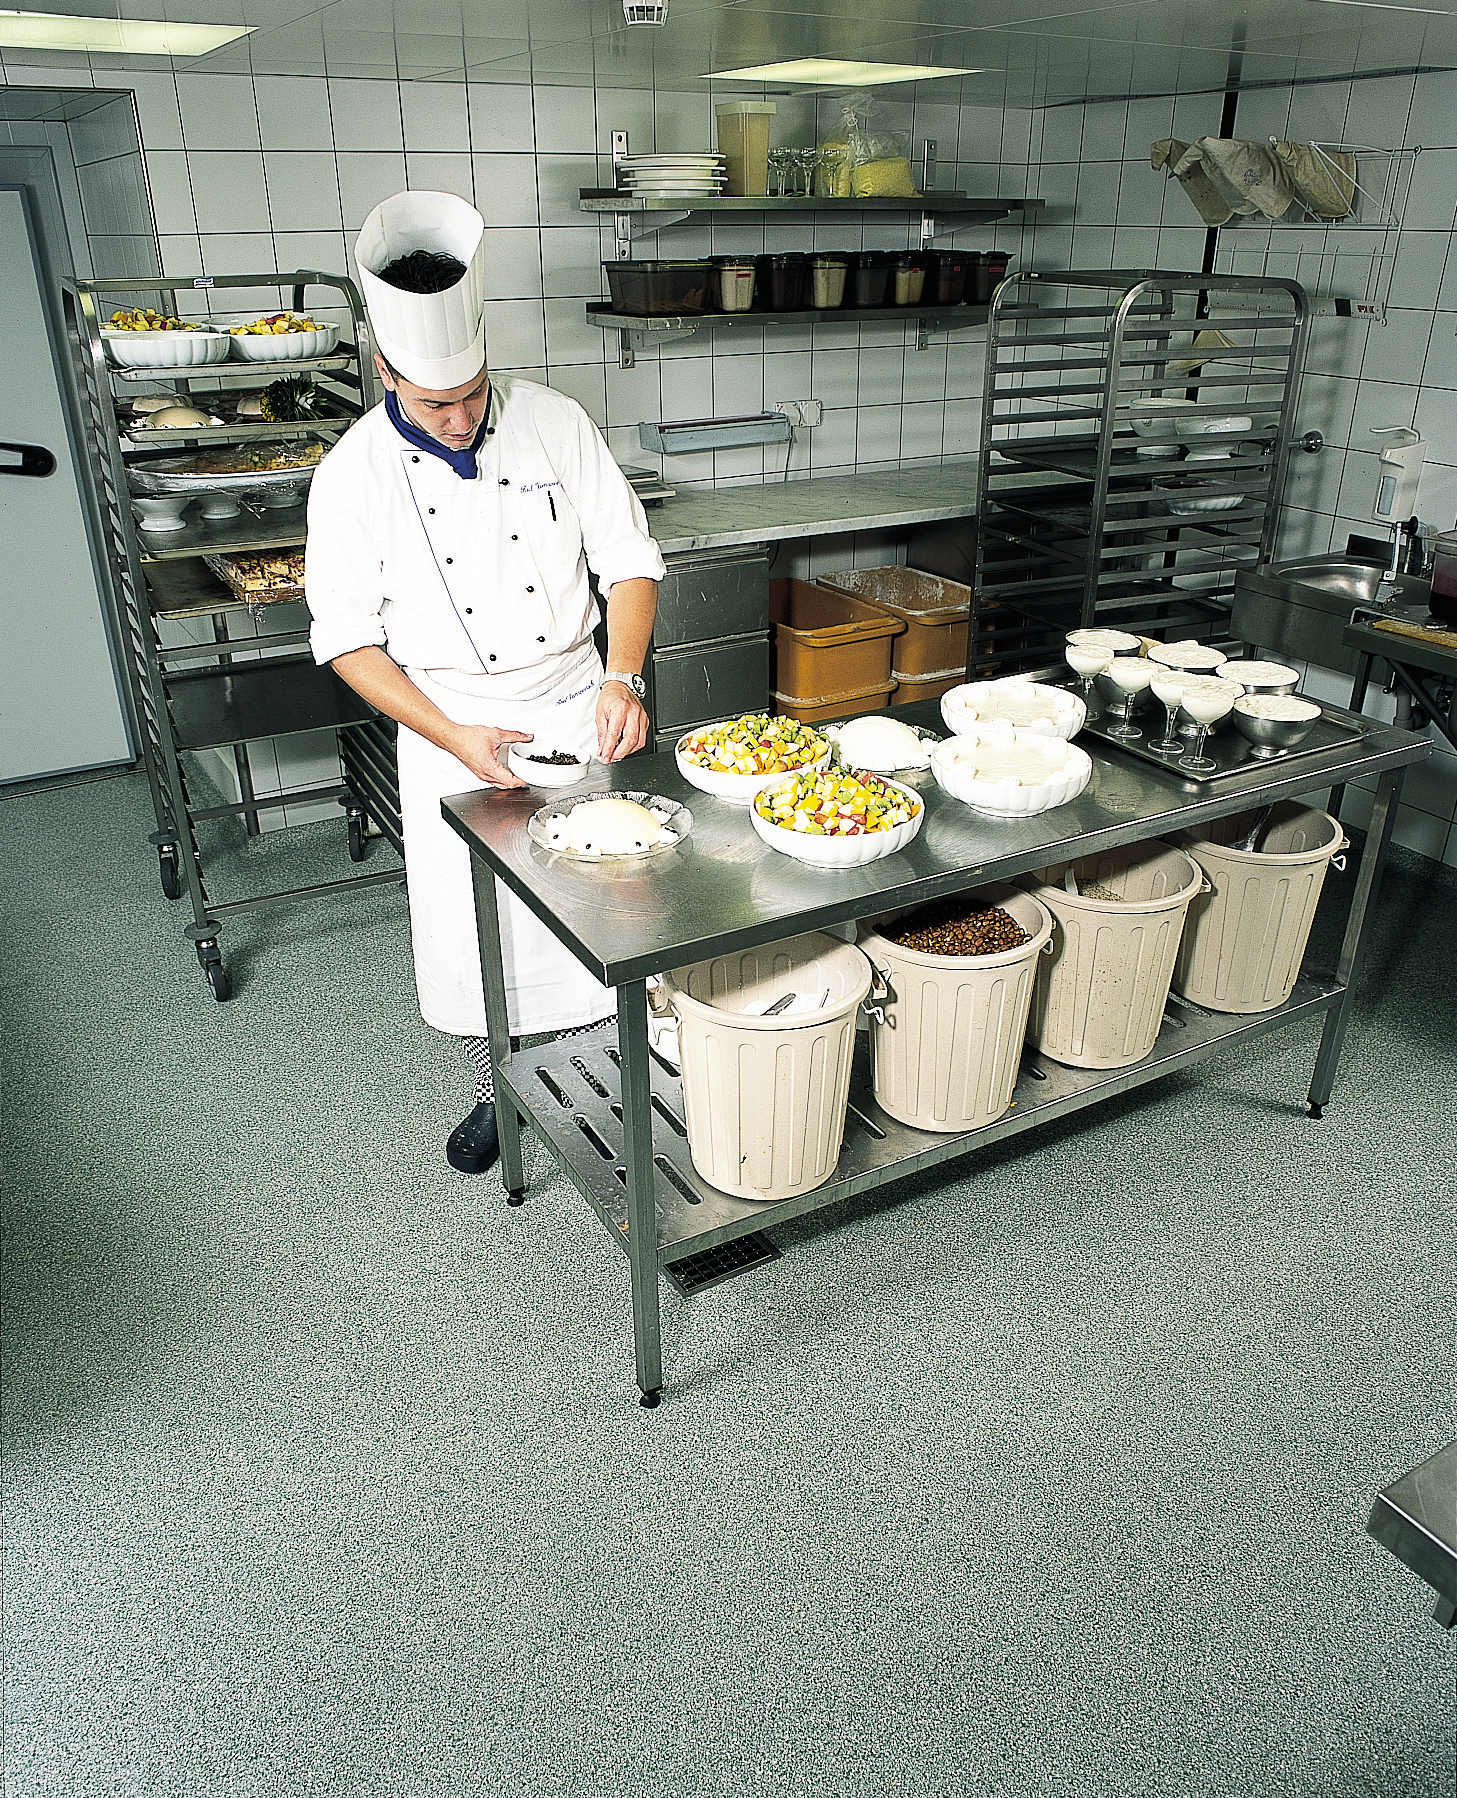 Messy Kitchen Catering: Floors For Cuisine Preperation